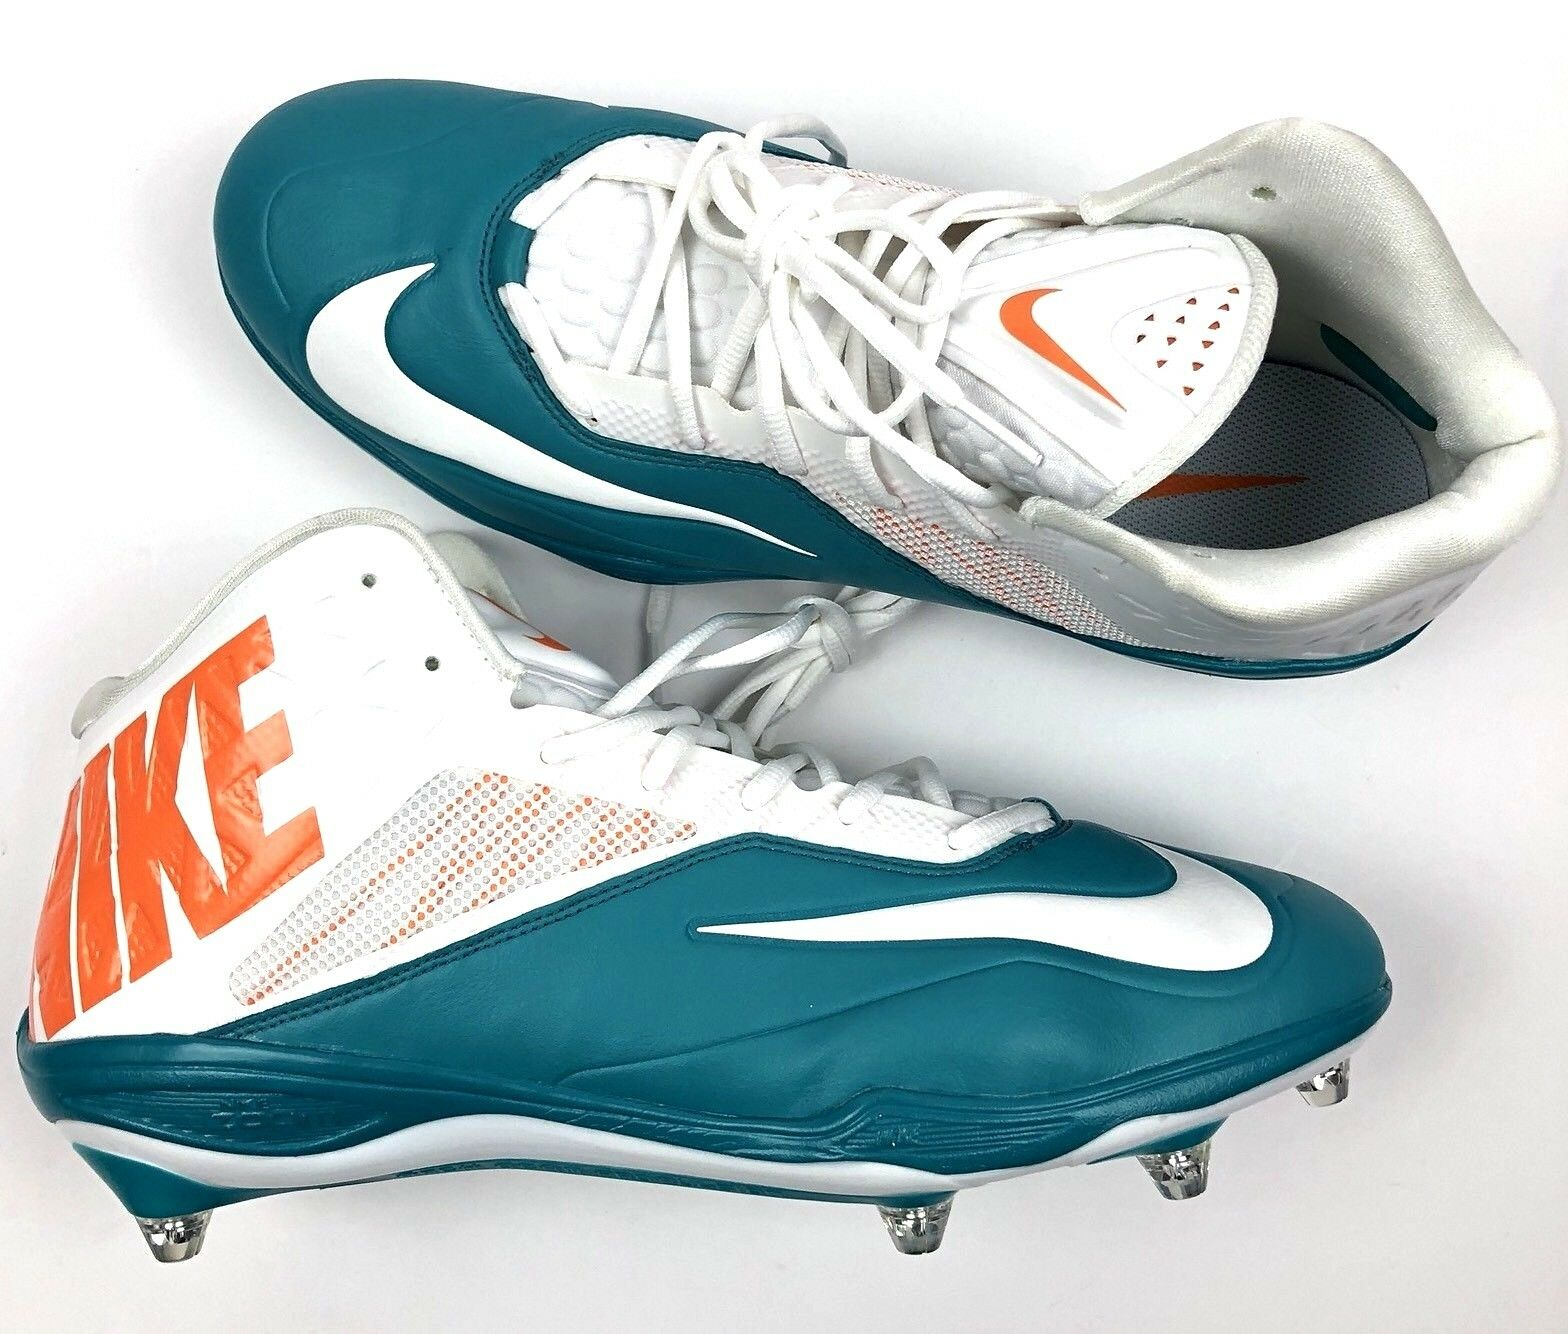 Nike Zoom Mens Football Cleats 3/4 Dolphins Colors Removable Spikes size 14 Seasonal price cuts, discount benefits